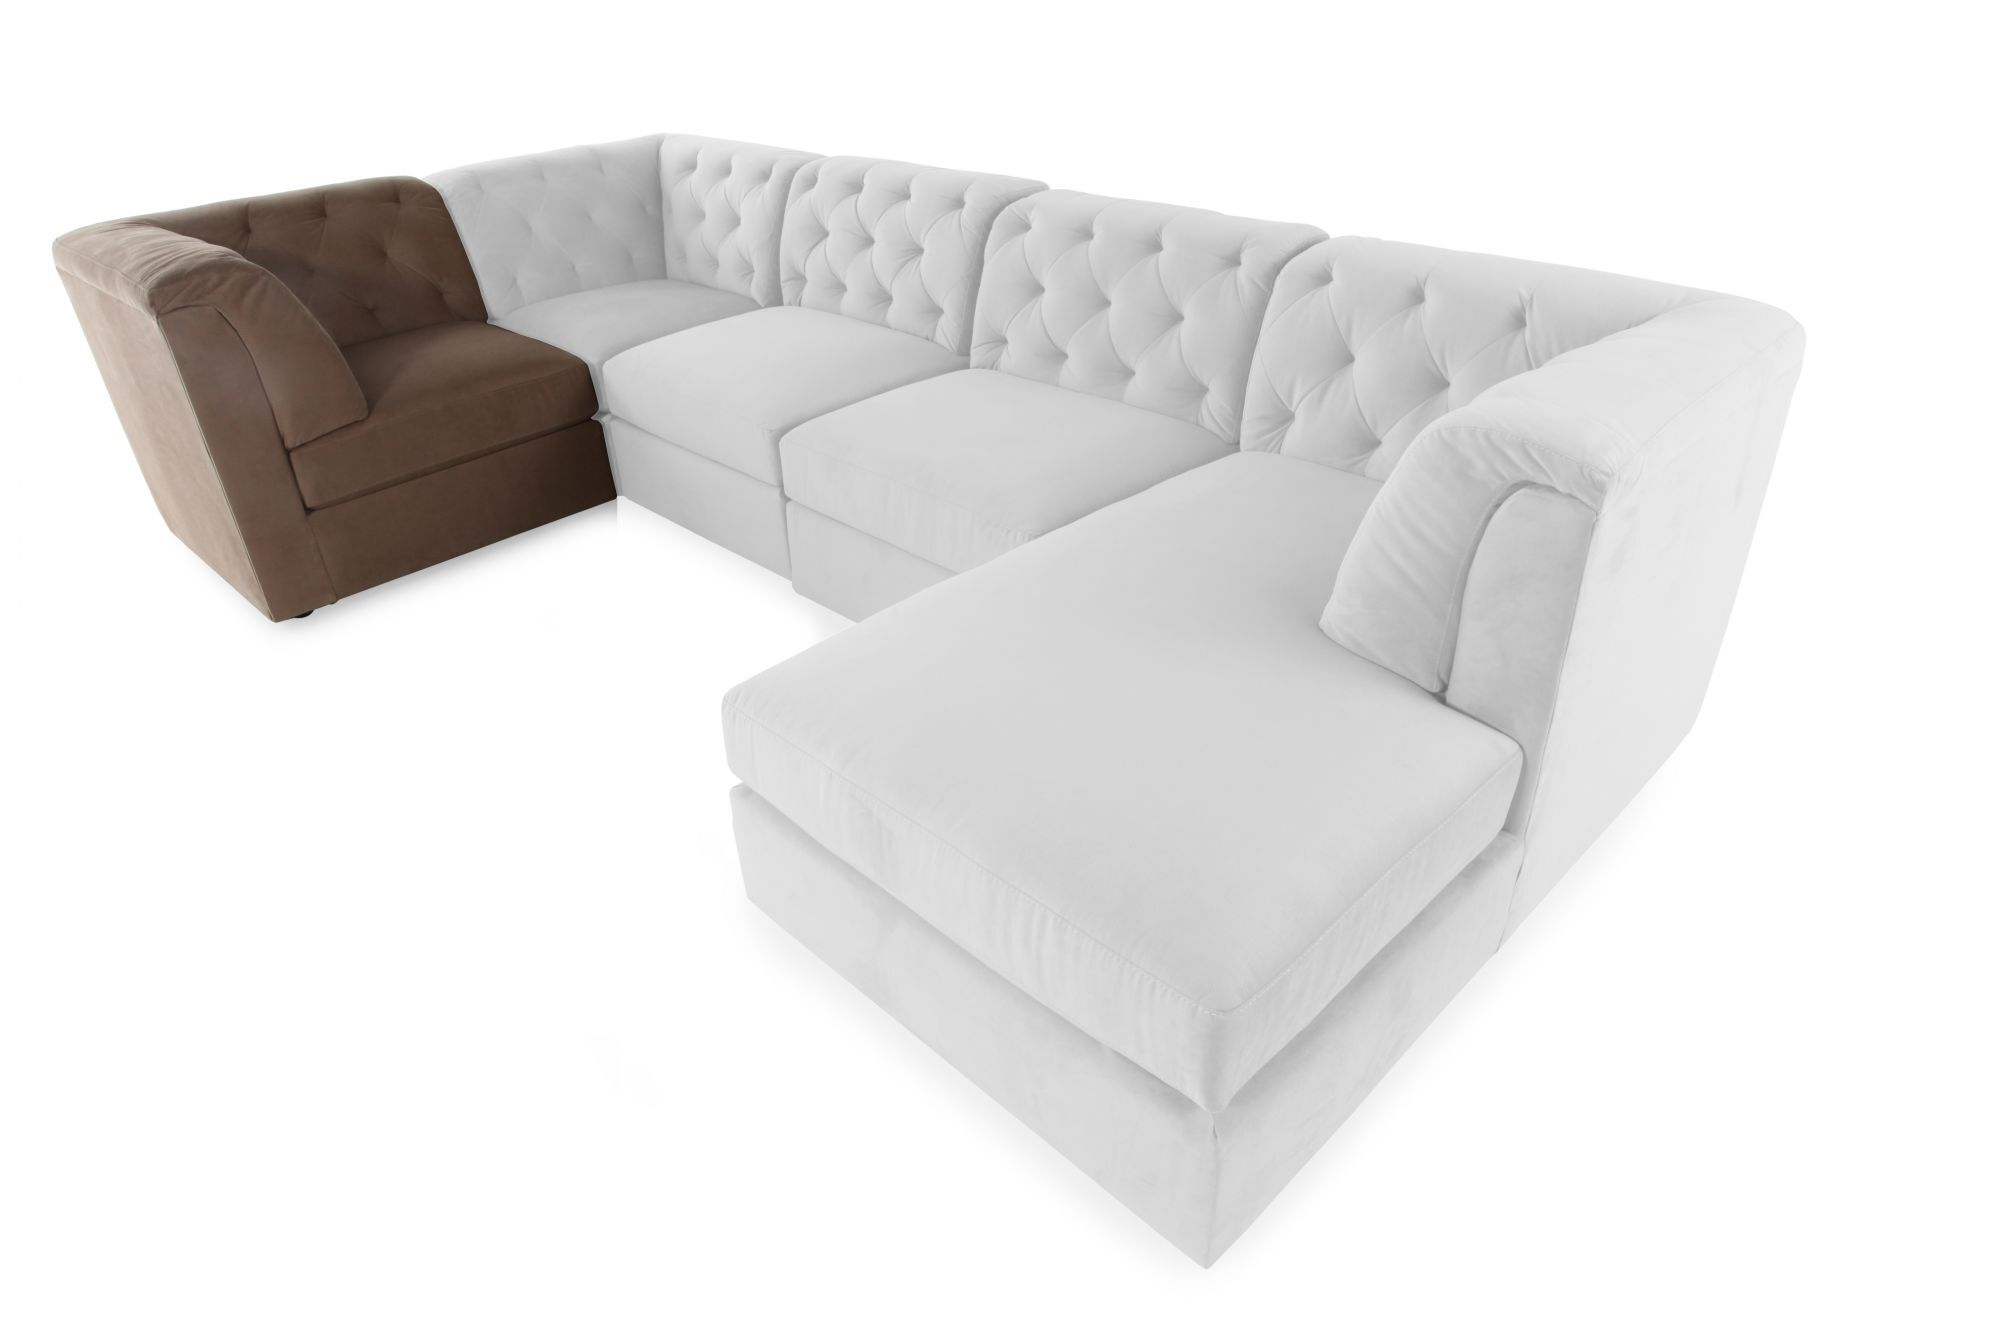 sectional sofa corner wedge height of end table contemporary 37 quot tufted in cocoa mathis